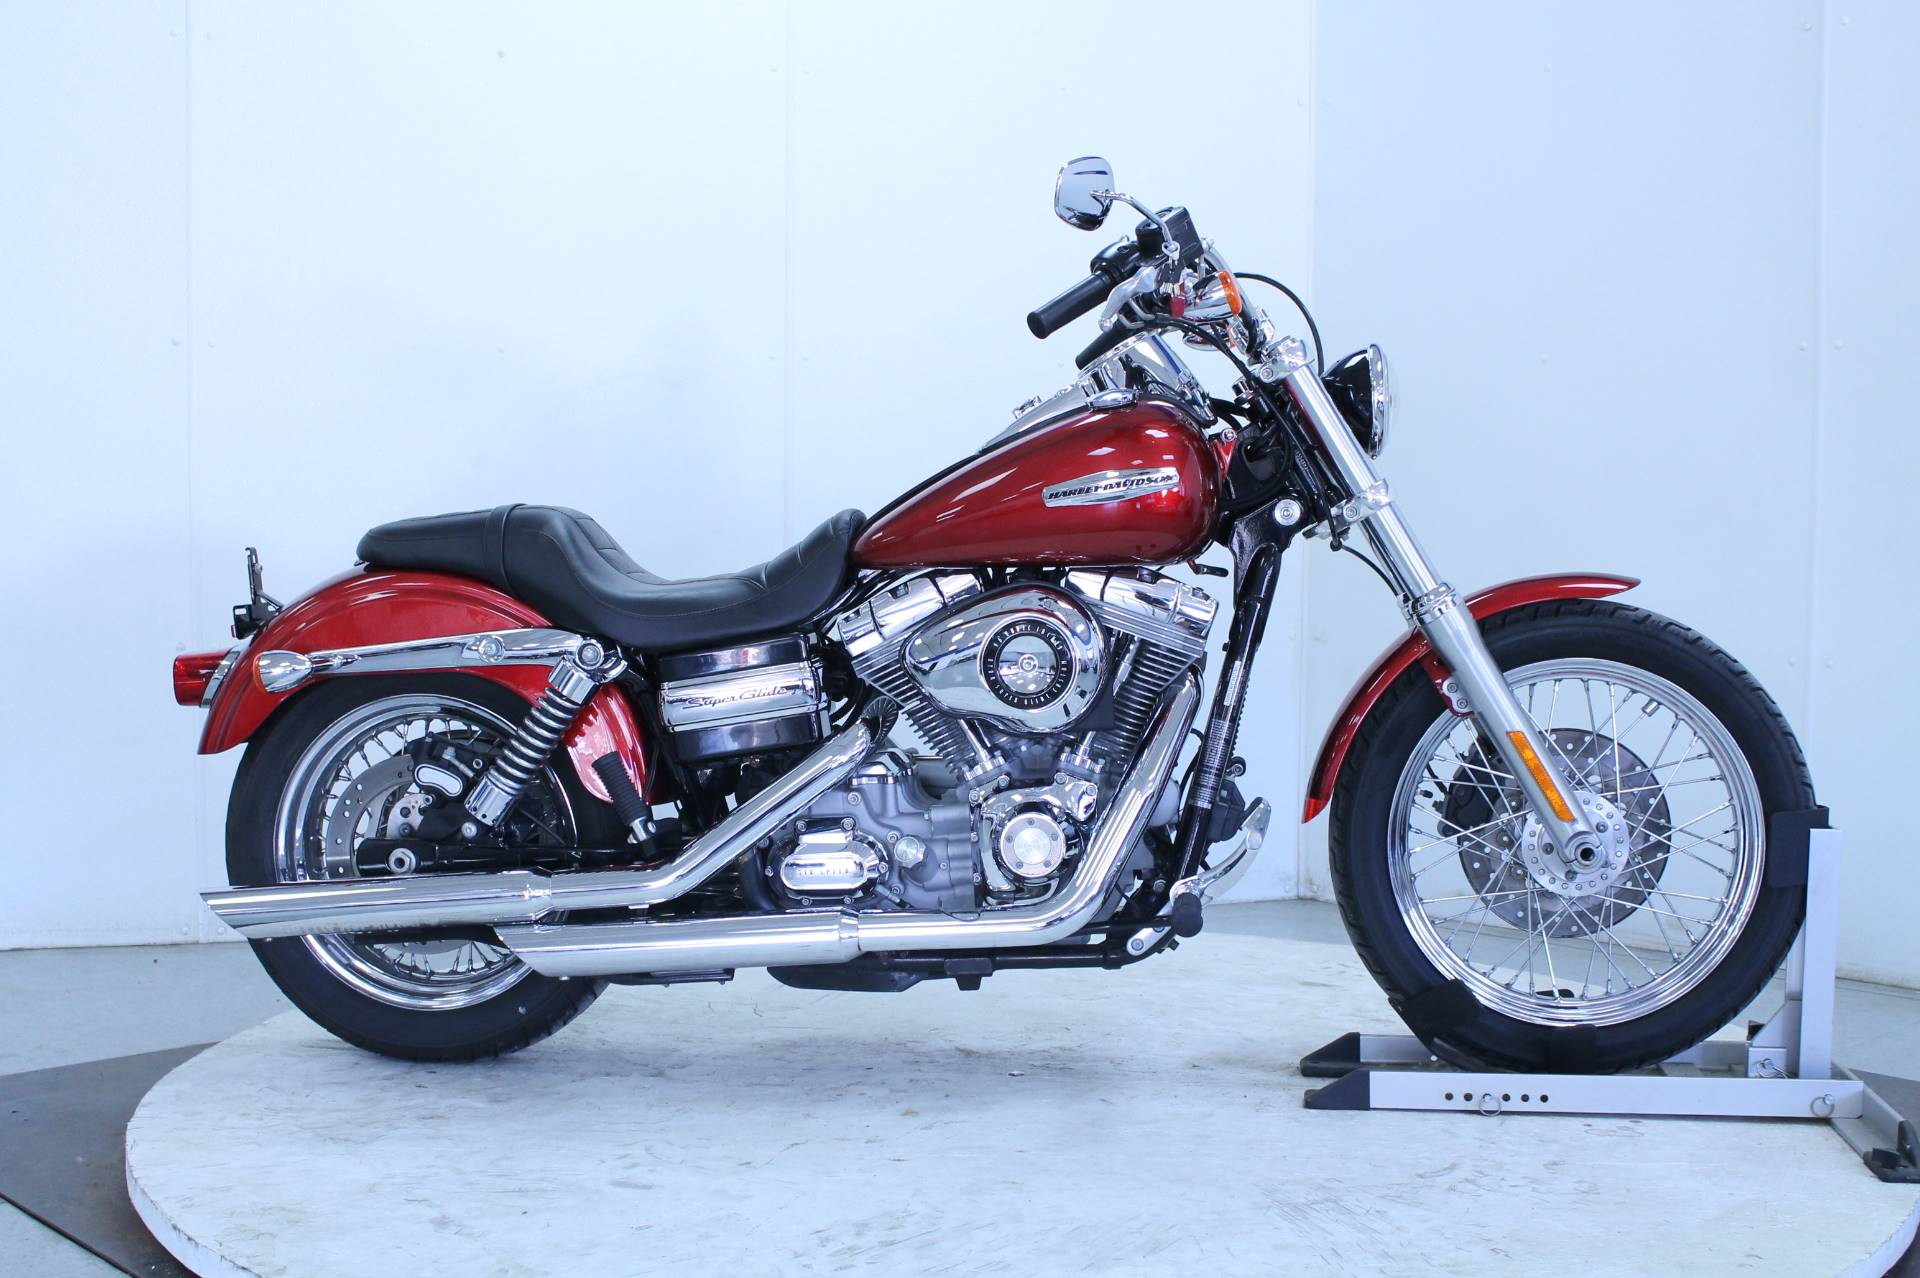 Custom Harley Davidson Dyna By Kraus: 2008 Harley-Davidson Dyna Super Glide Custom For Sale